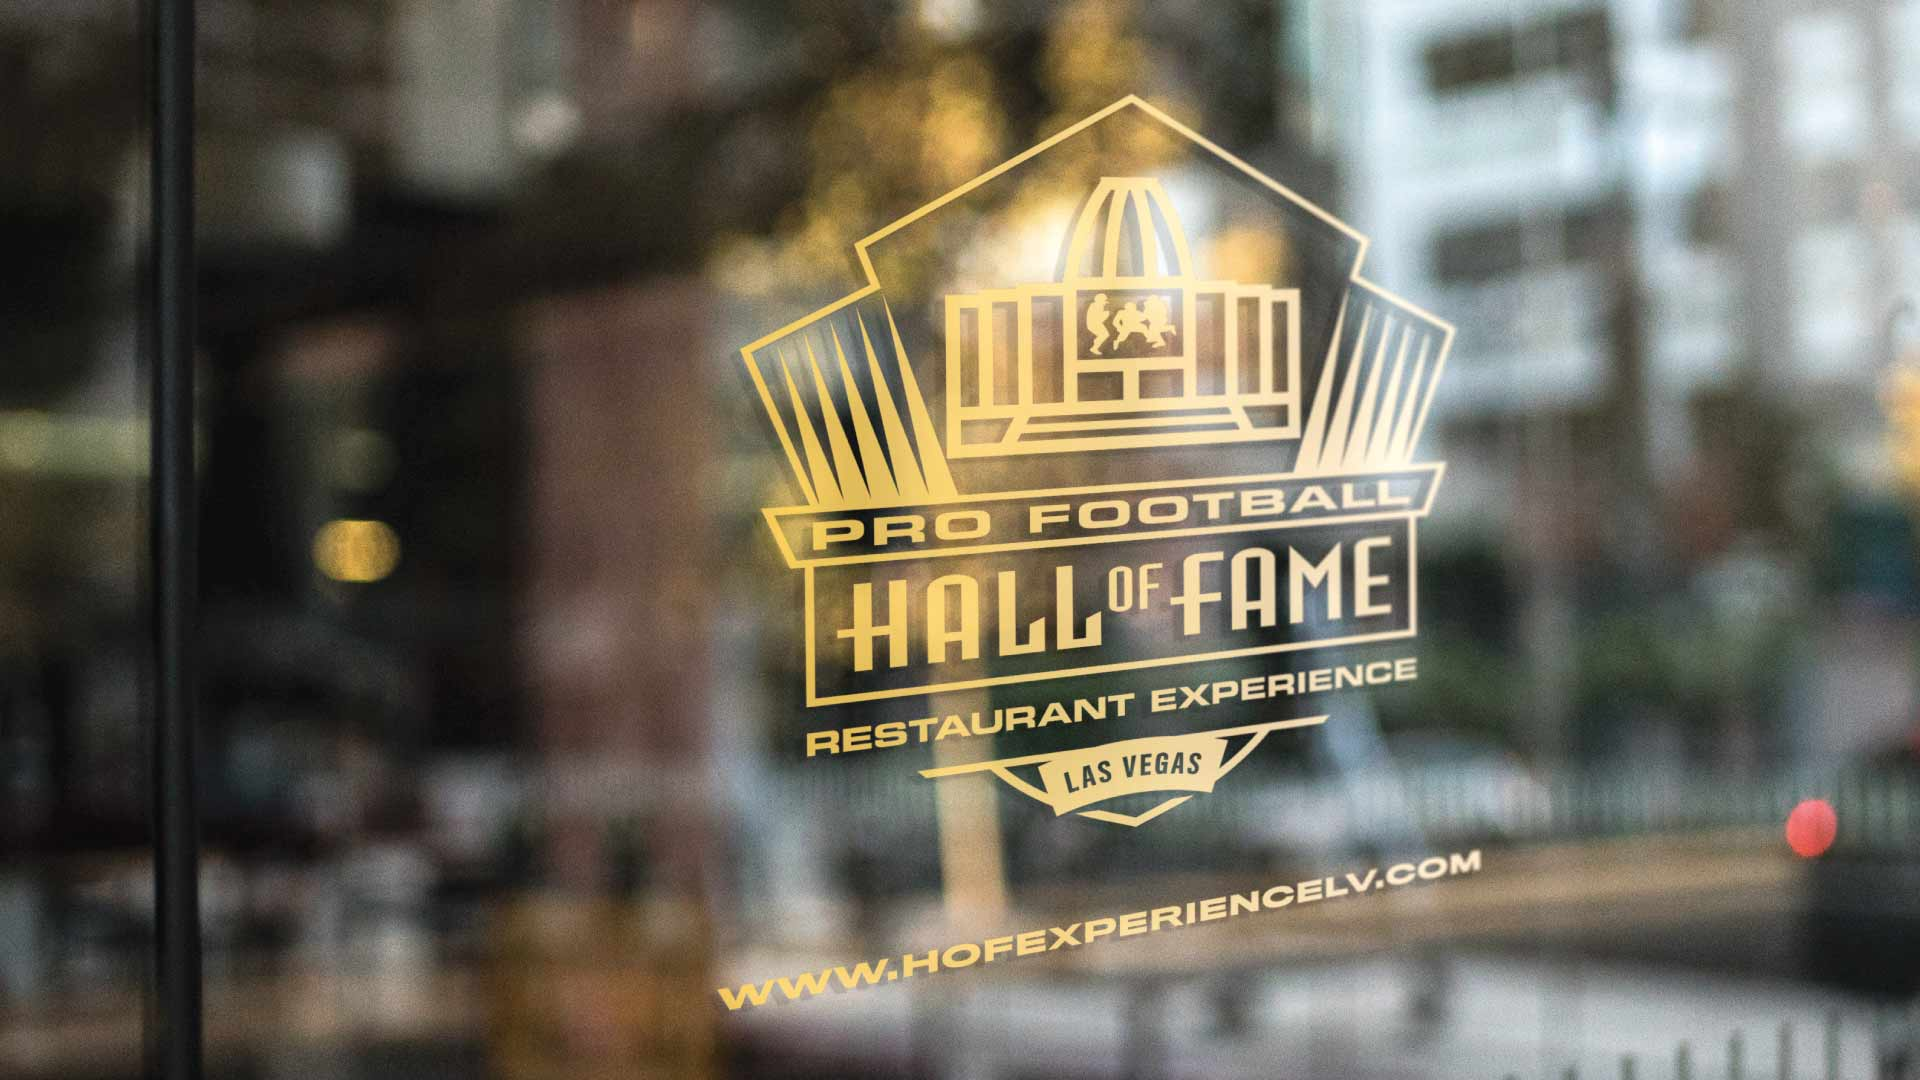 pro-football-hall-of-fame-restaurant-experience-window-sign